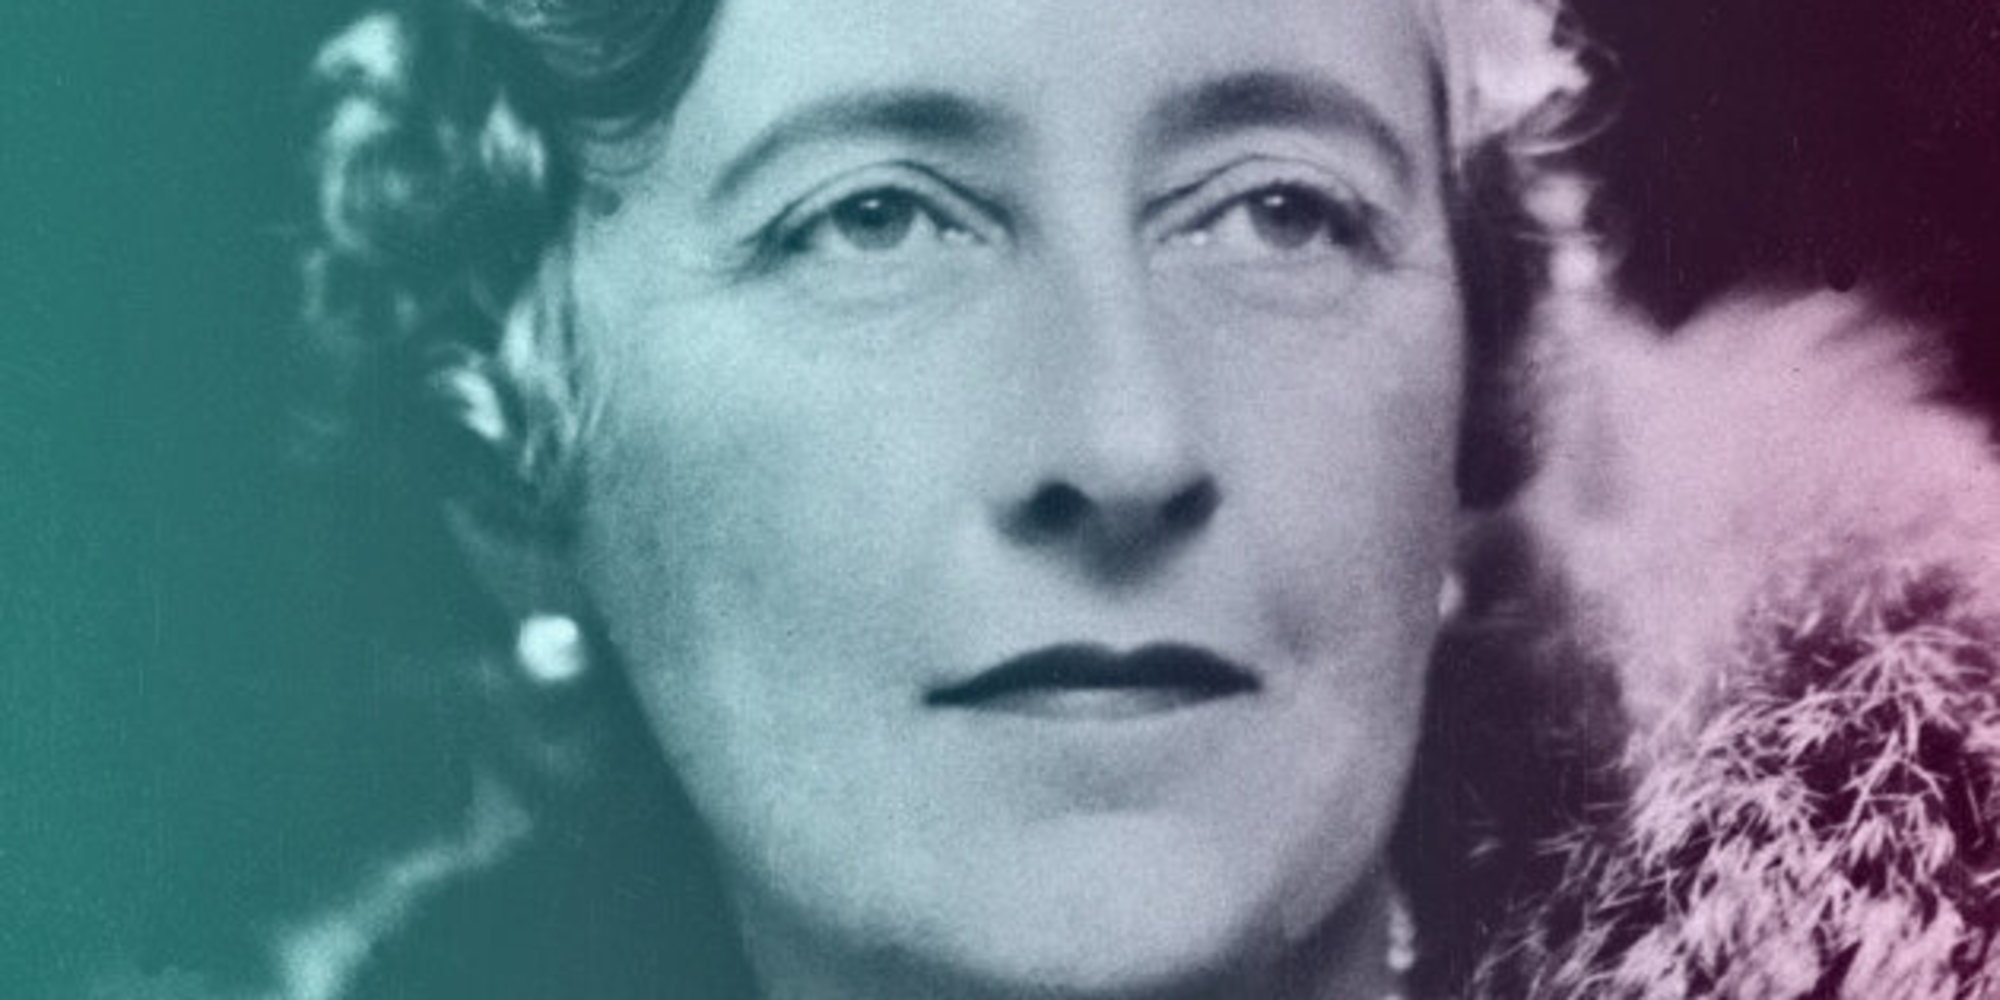 For women, Agatha Christie's murder mysteries are as soothing as bedtime stories https://t.co/ULGVD9cwIK https://t.co/q73Rrm3LBi